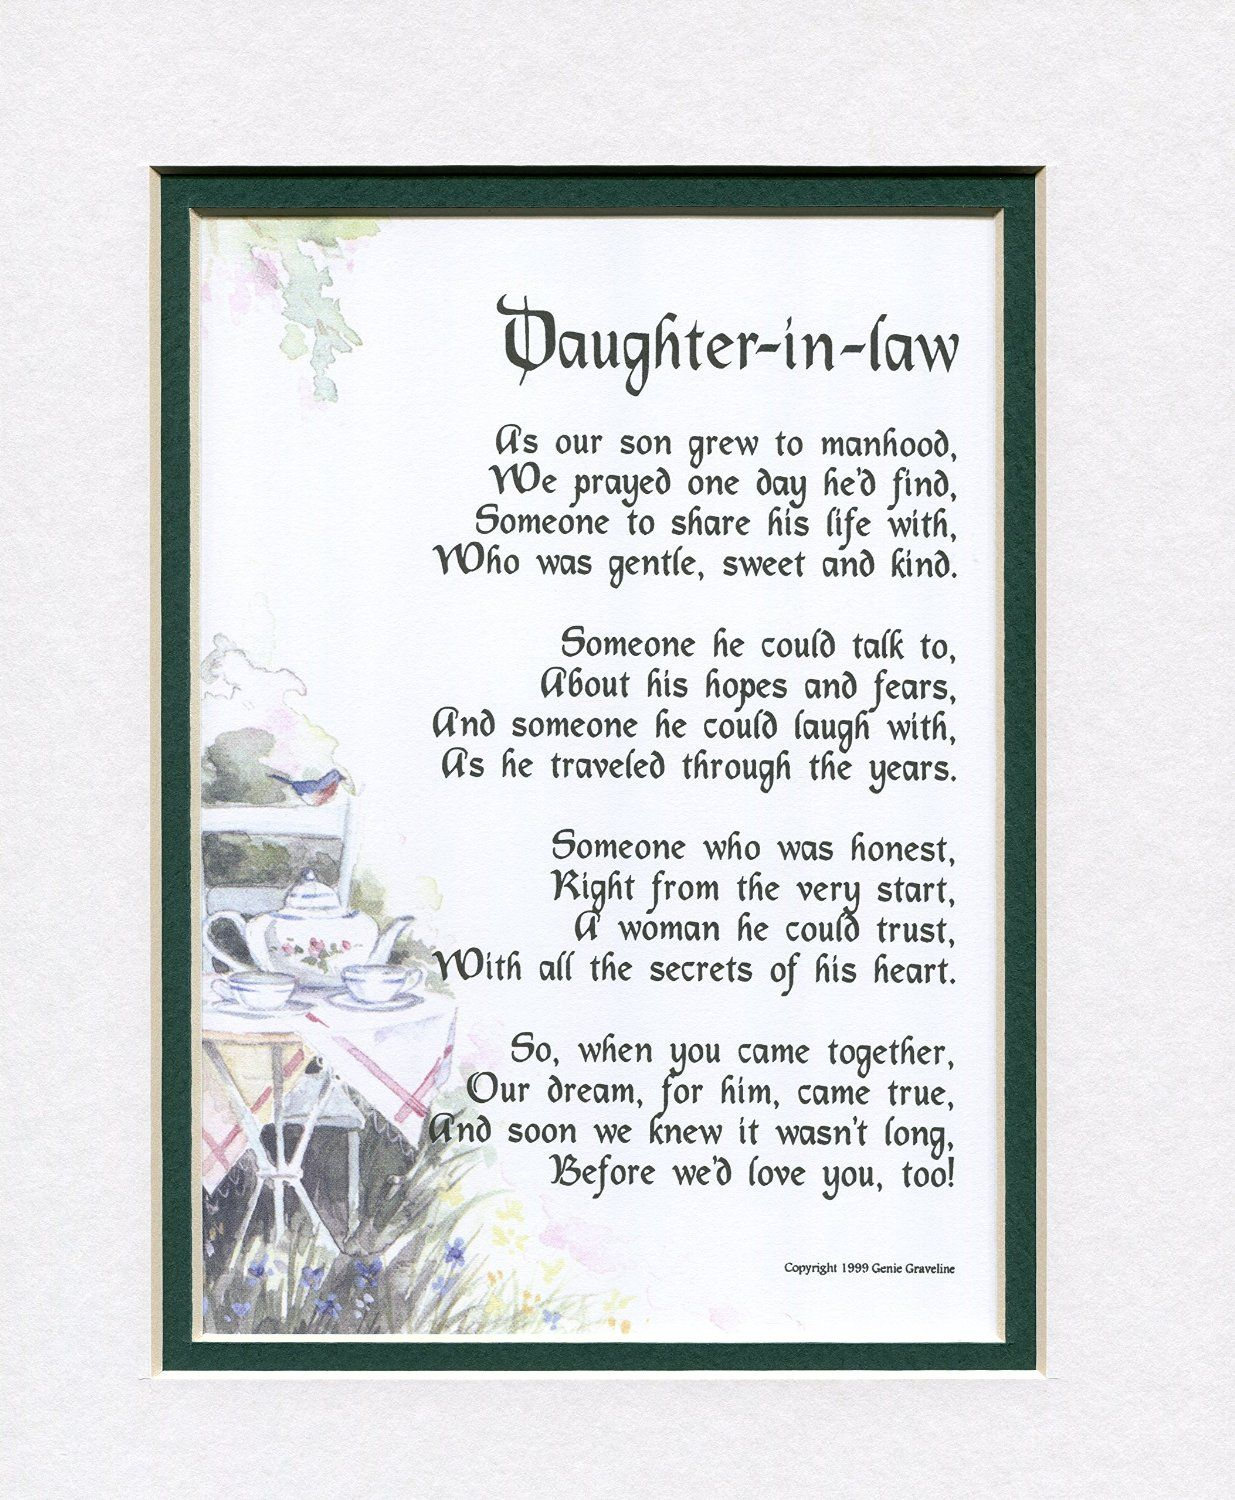 Wedding Gifts For Daughter And Son In Law : daughter in law gifts future daughter mother daughters wedding poems ...